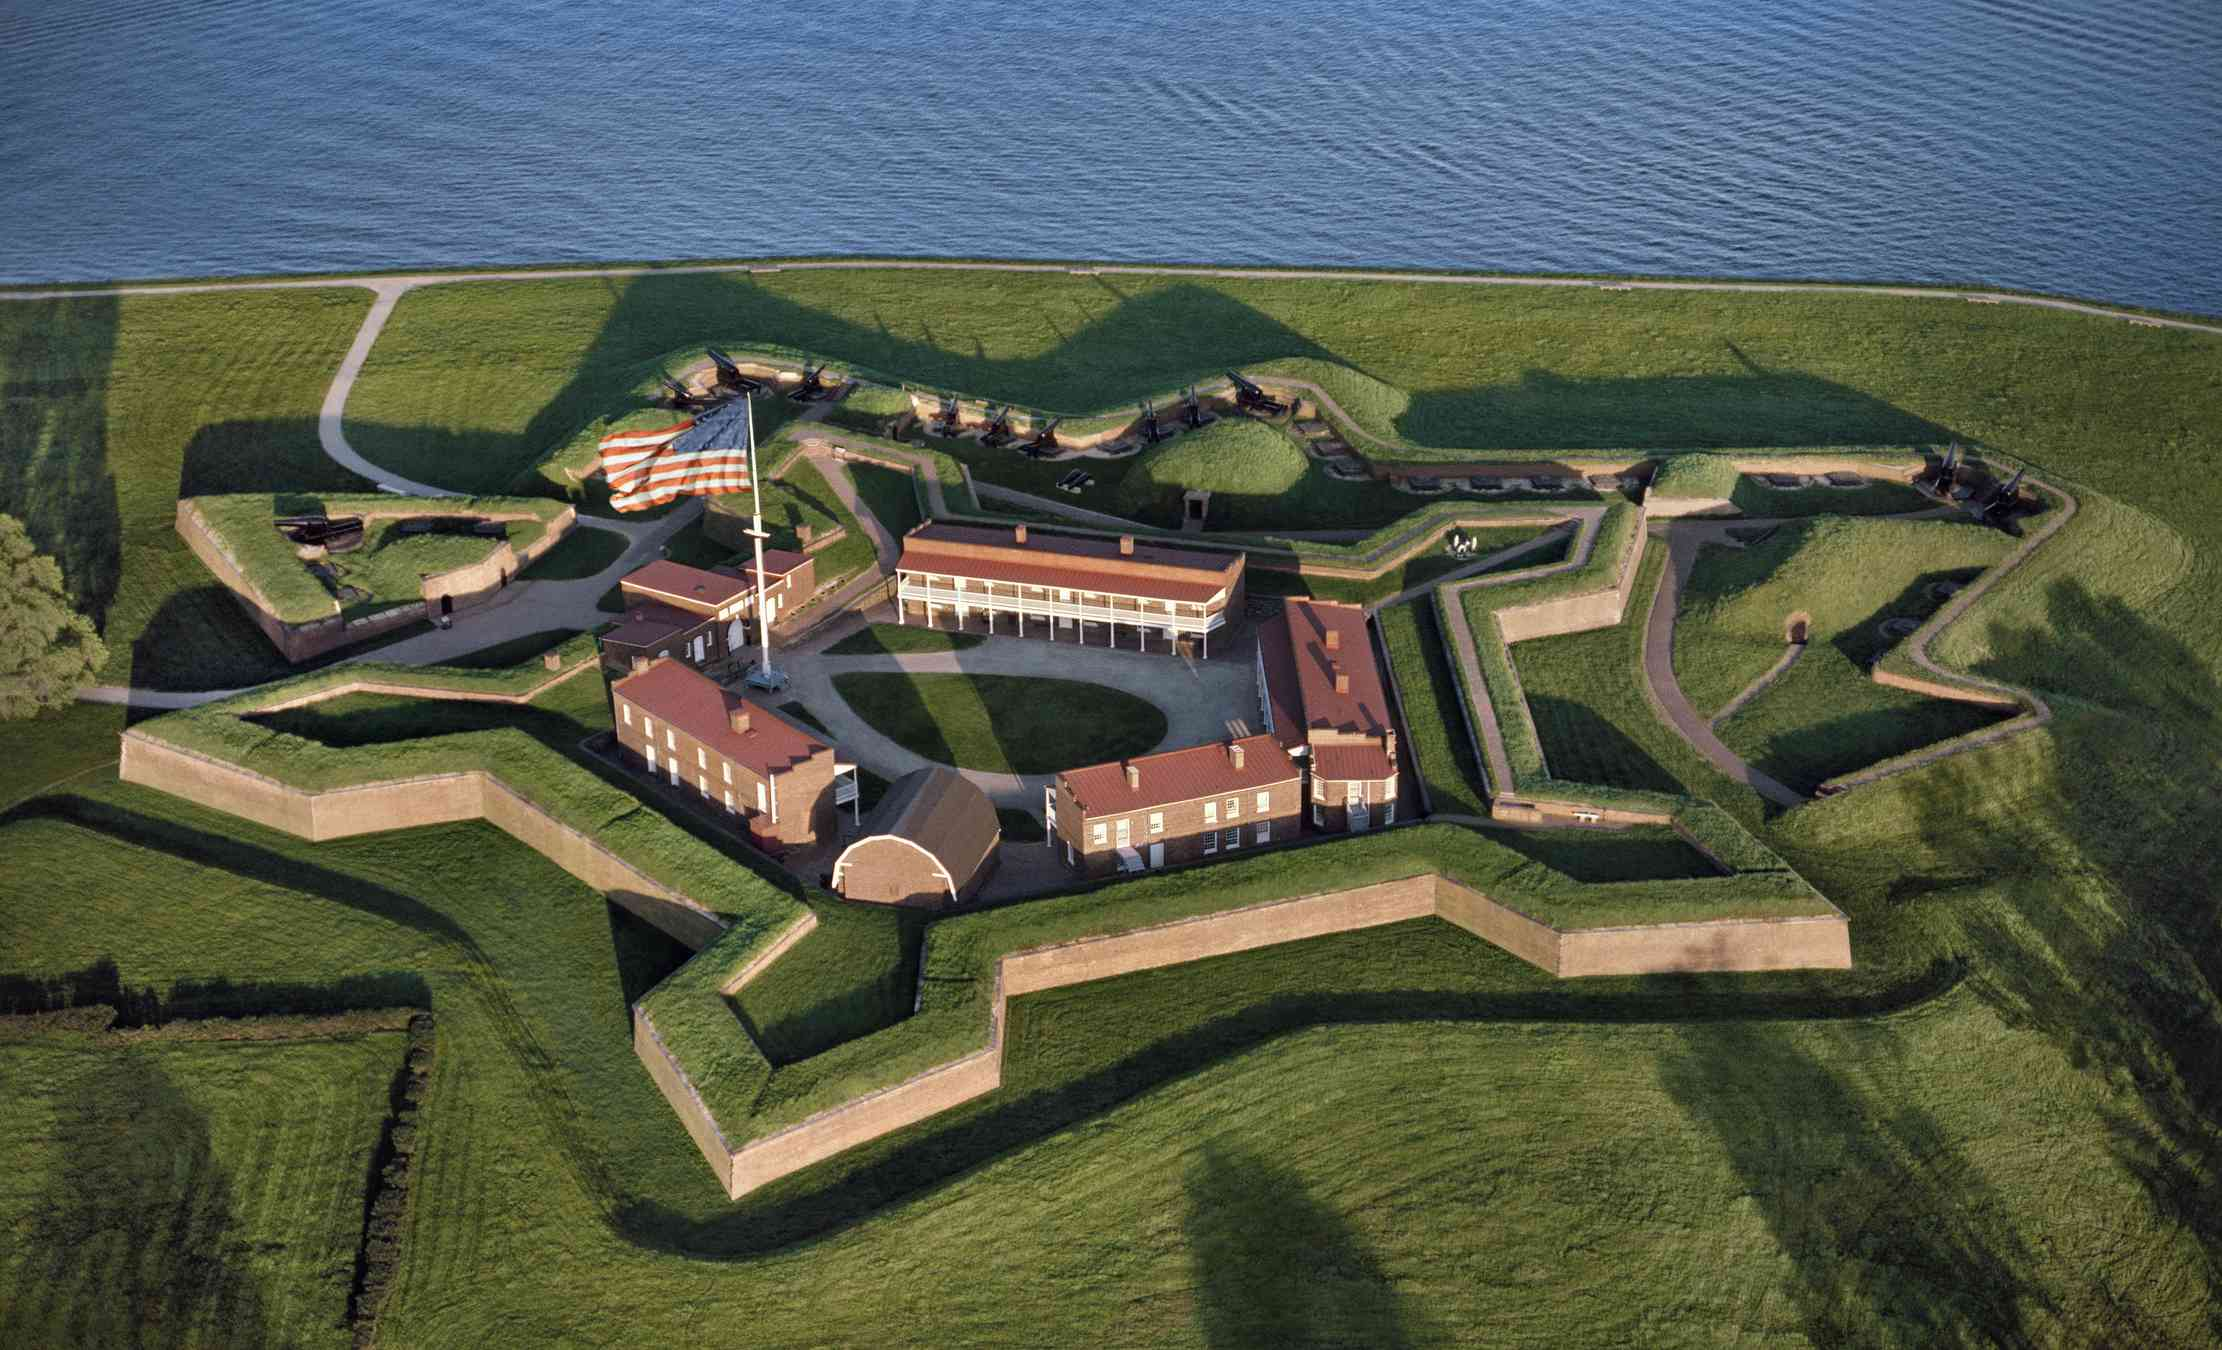 arial view of pentagonal-shaped Fort McHenry National Monument and Historic Shrine surrounded by manicured green lawns and adjacent to the Patapsco River